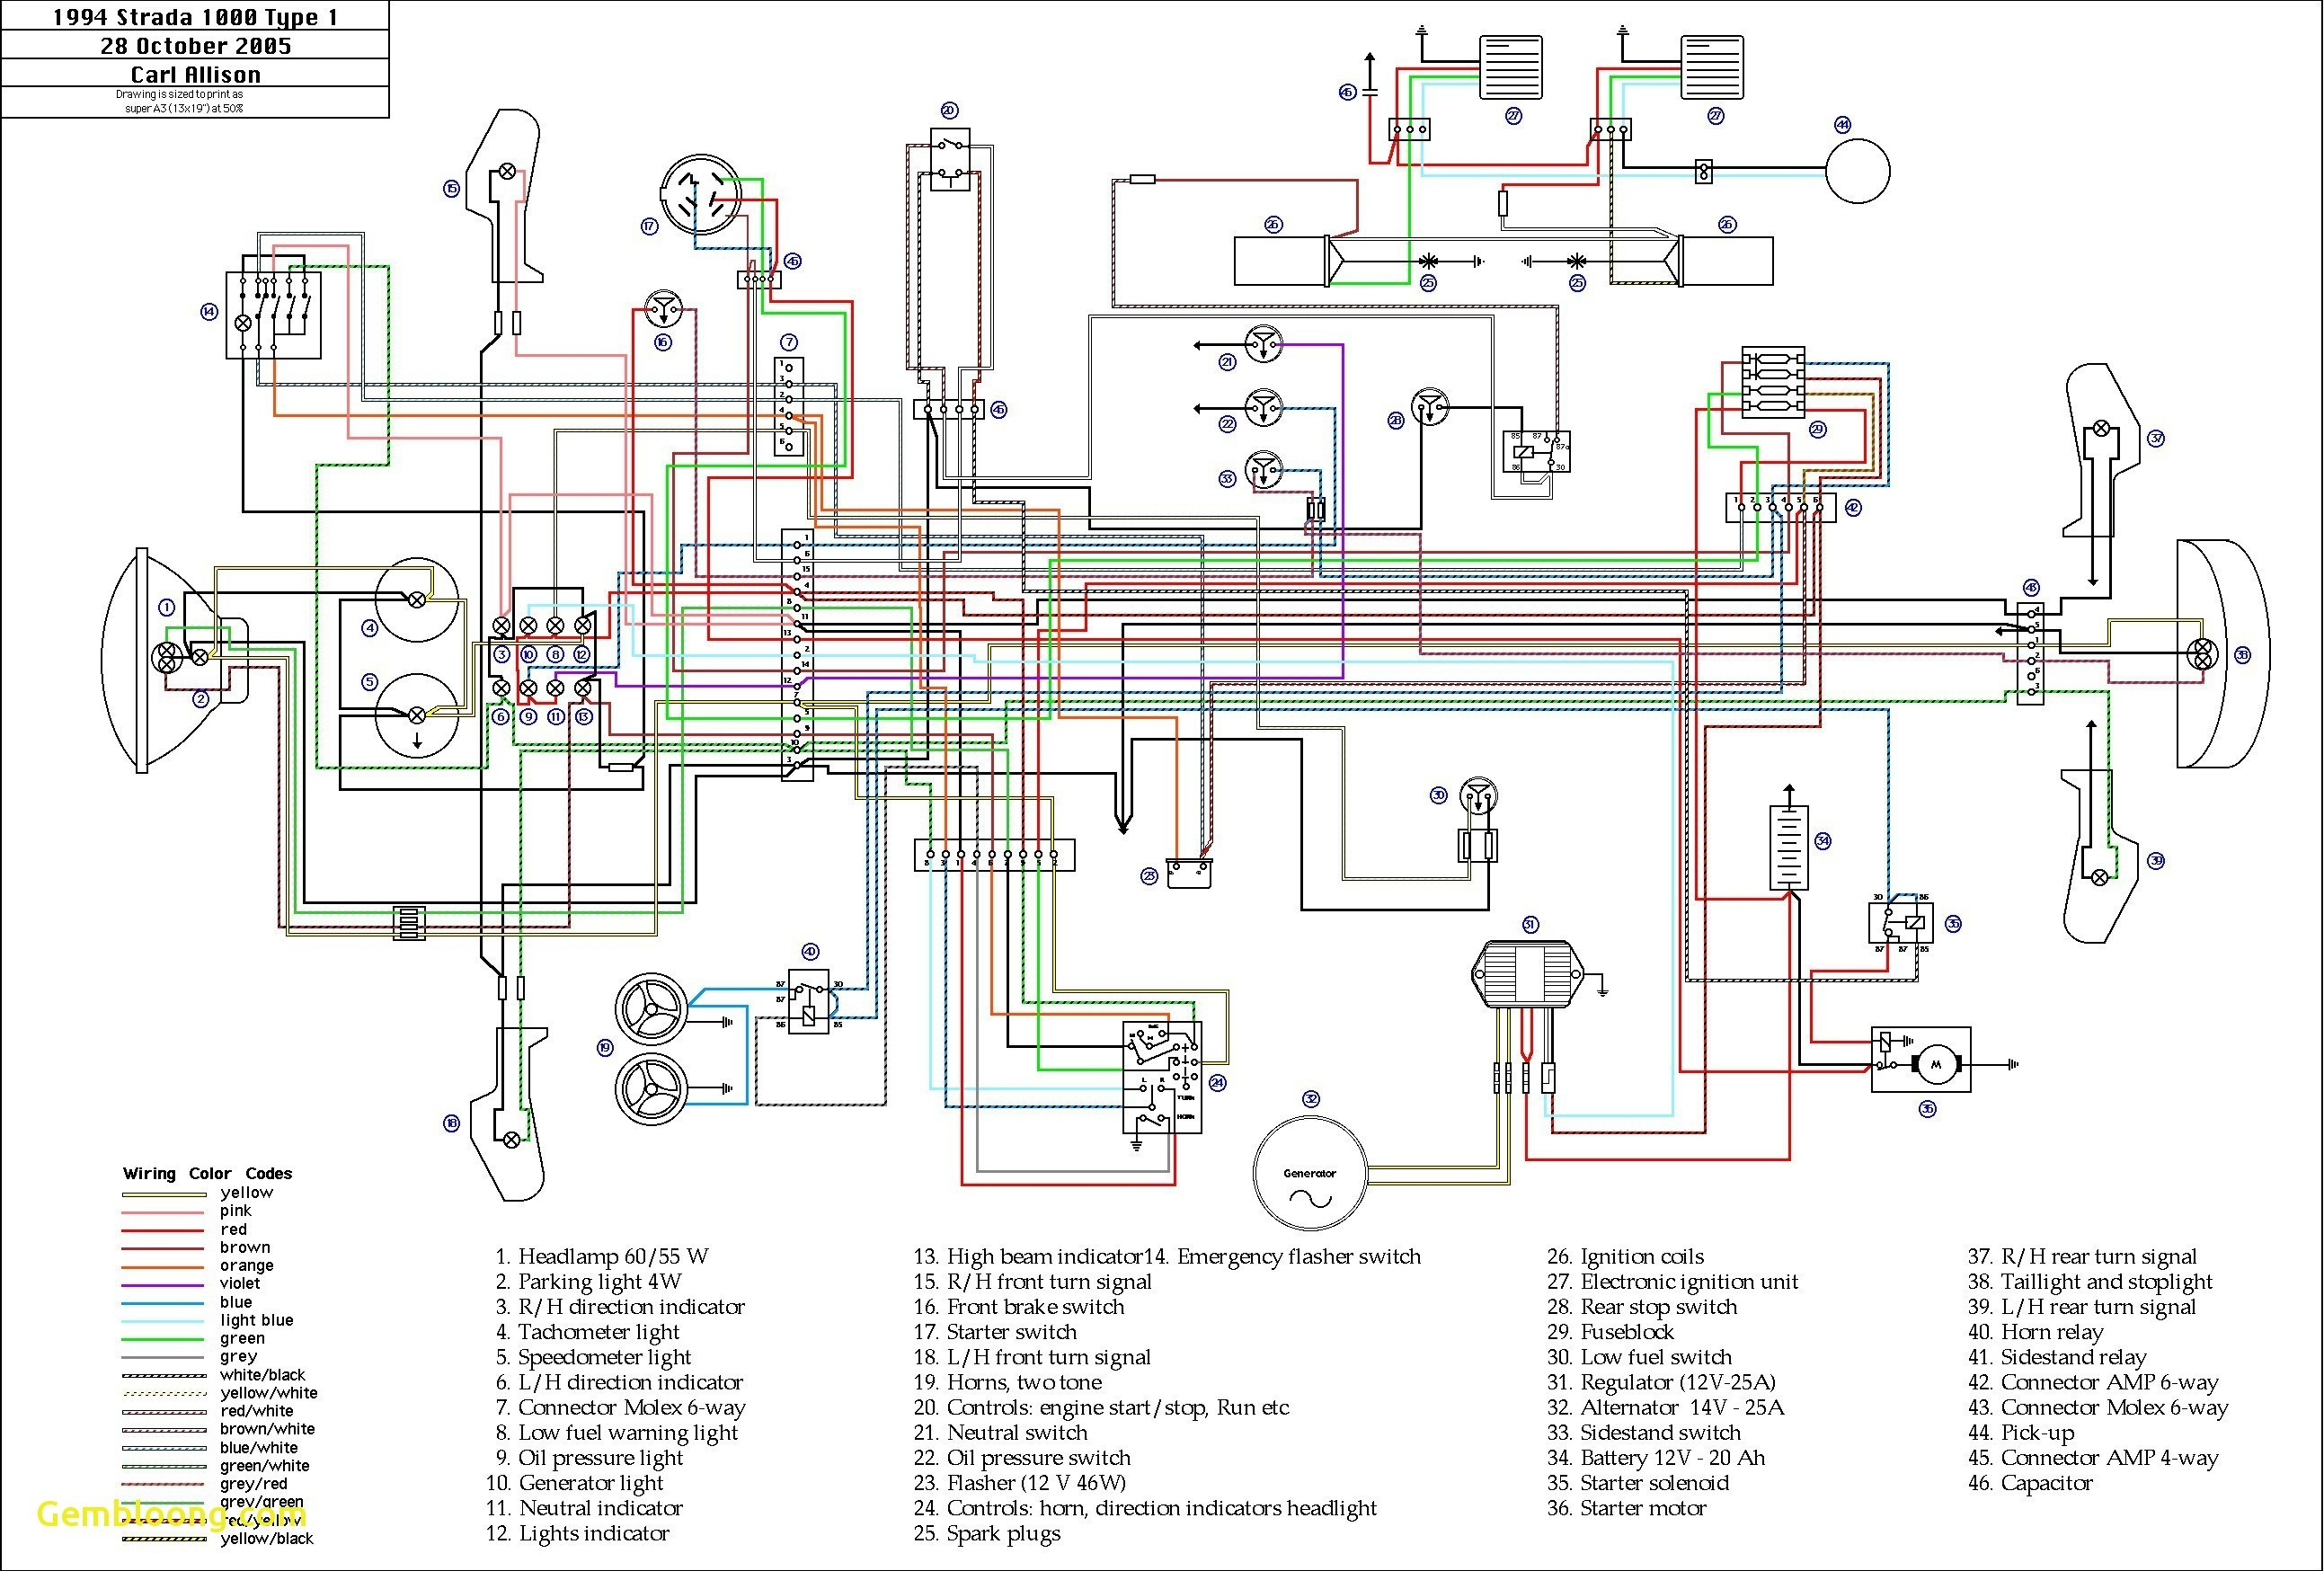 2011 318d John Deere Starter solenoid Diagram] 2006 Bmw F650gs Wiring Diagram Full Version Hd Of 2011 318d John Deere Starter solenoid